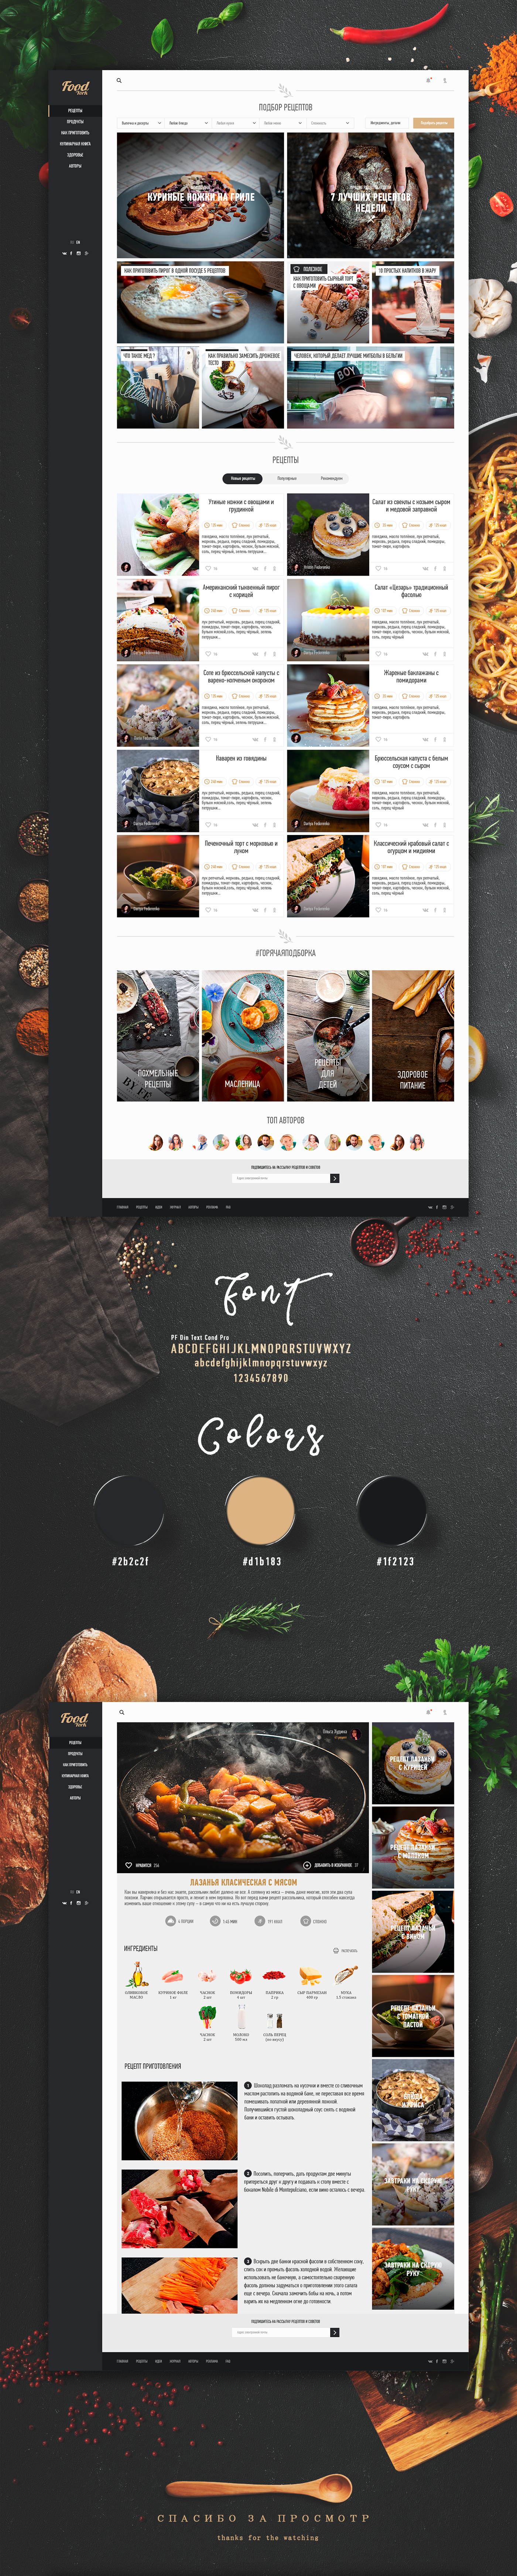 Eda Is A Free Website PSD Template For Recipes And Food Articles It Features Well Designed Homepage With Contast Color Palette Lot Of